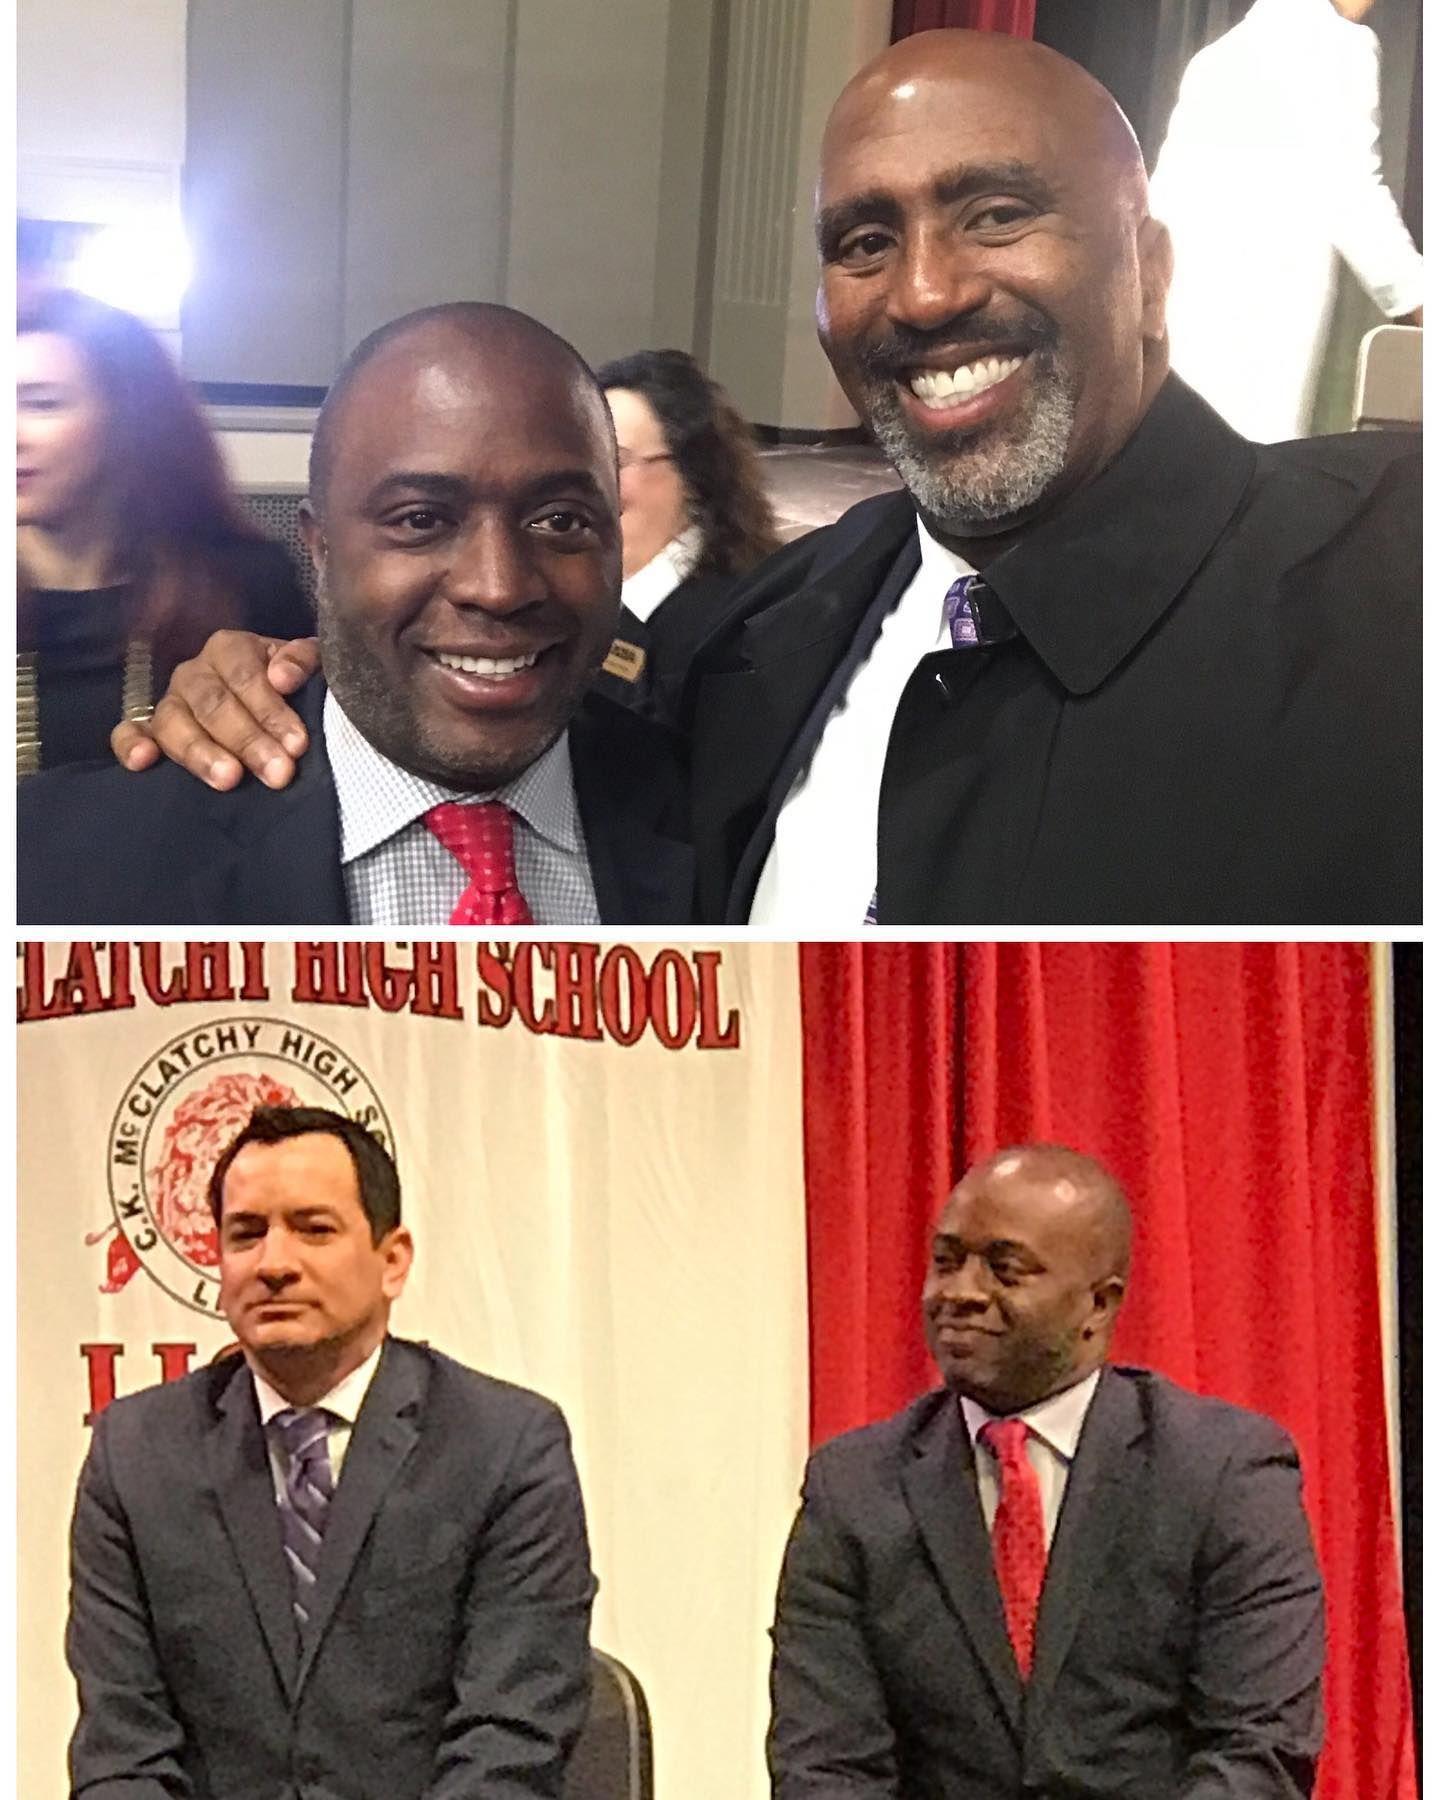 Congratulations to my friend, Tony Thurmond, on being sworn in as our new State Superintendent of Public Instruction.